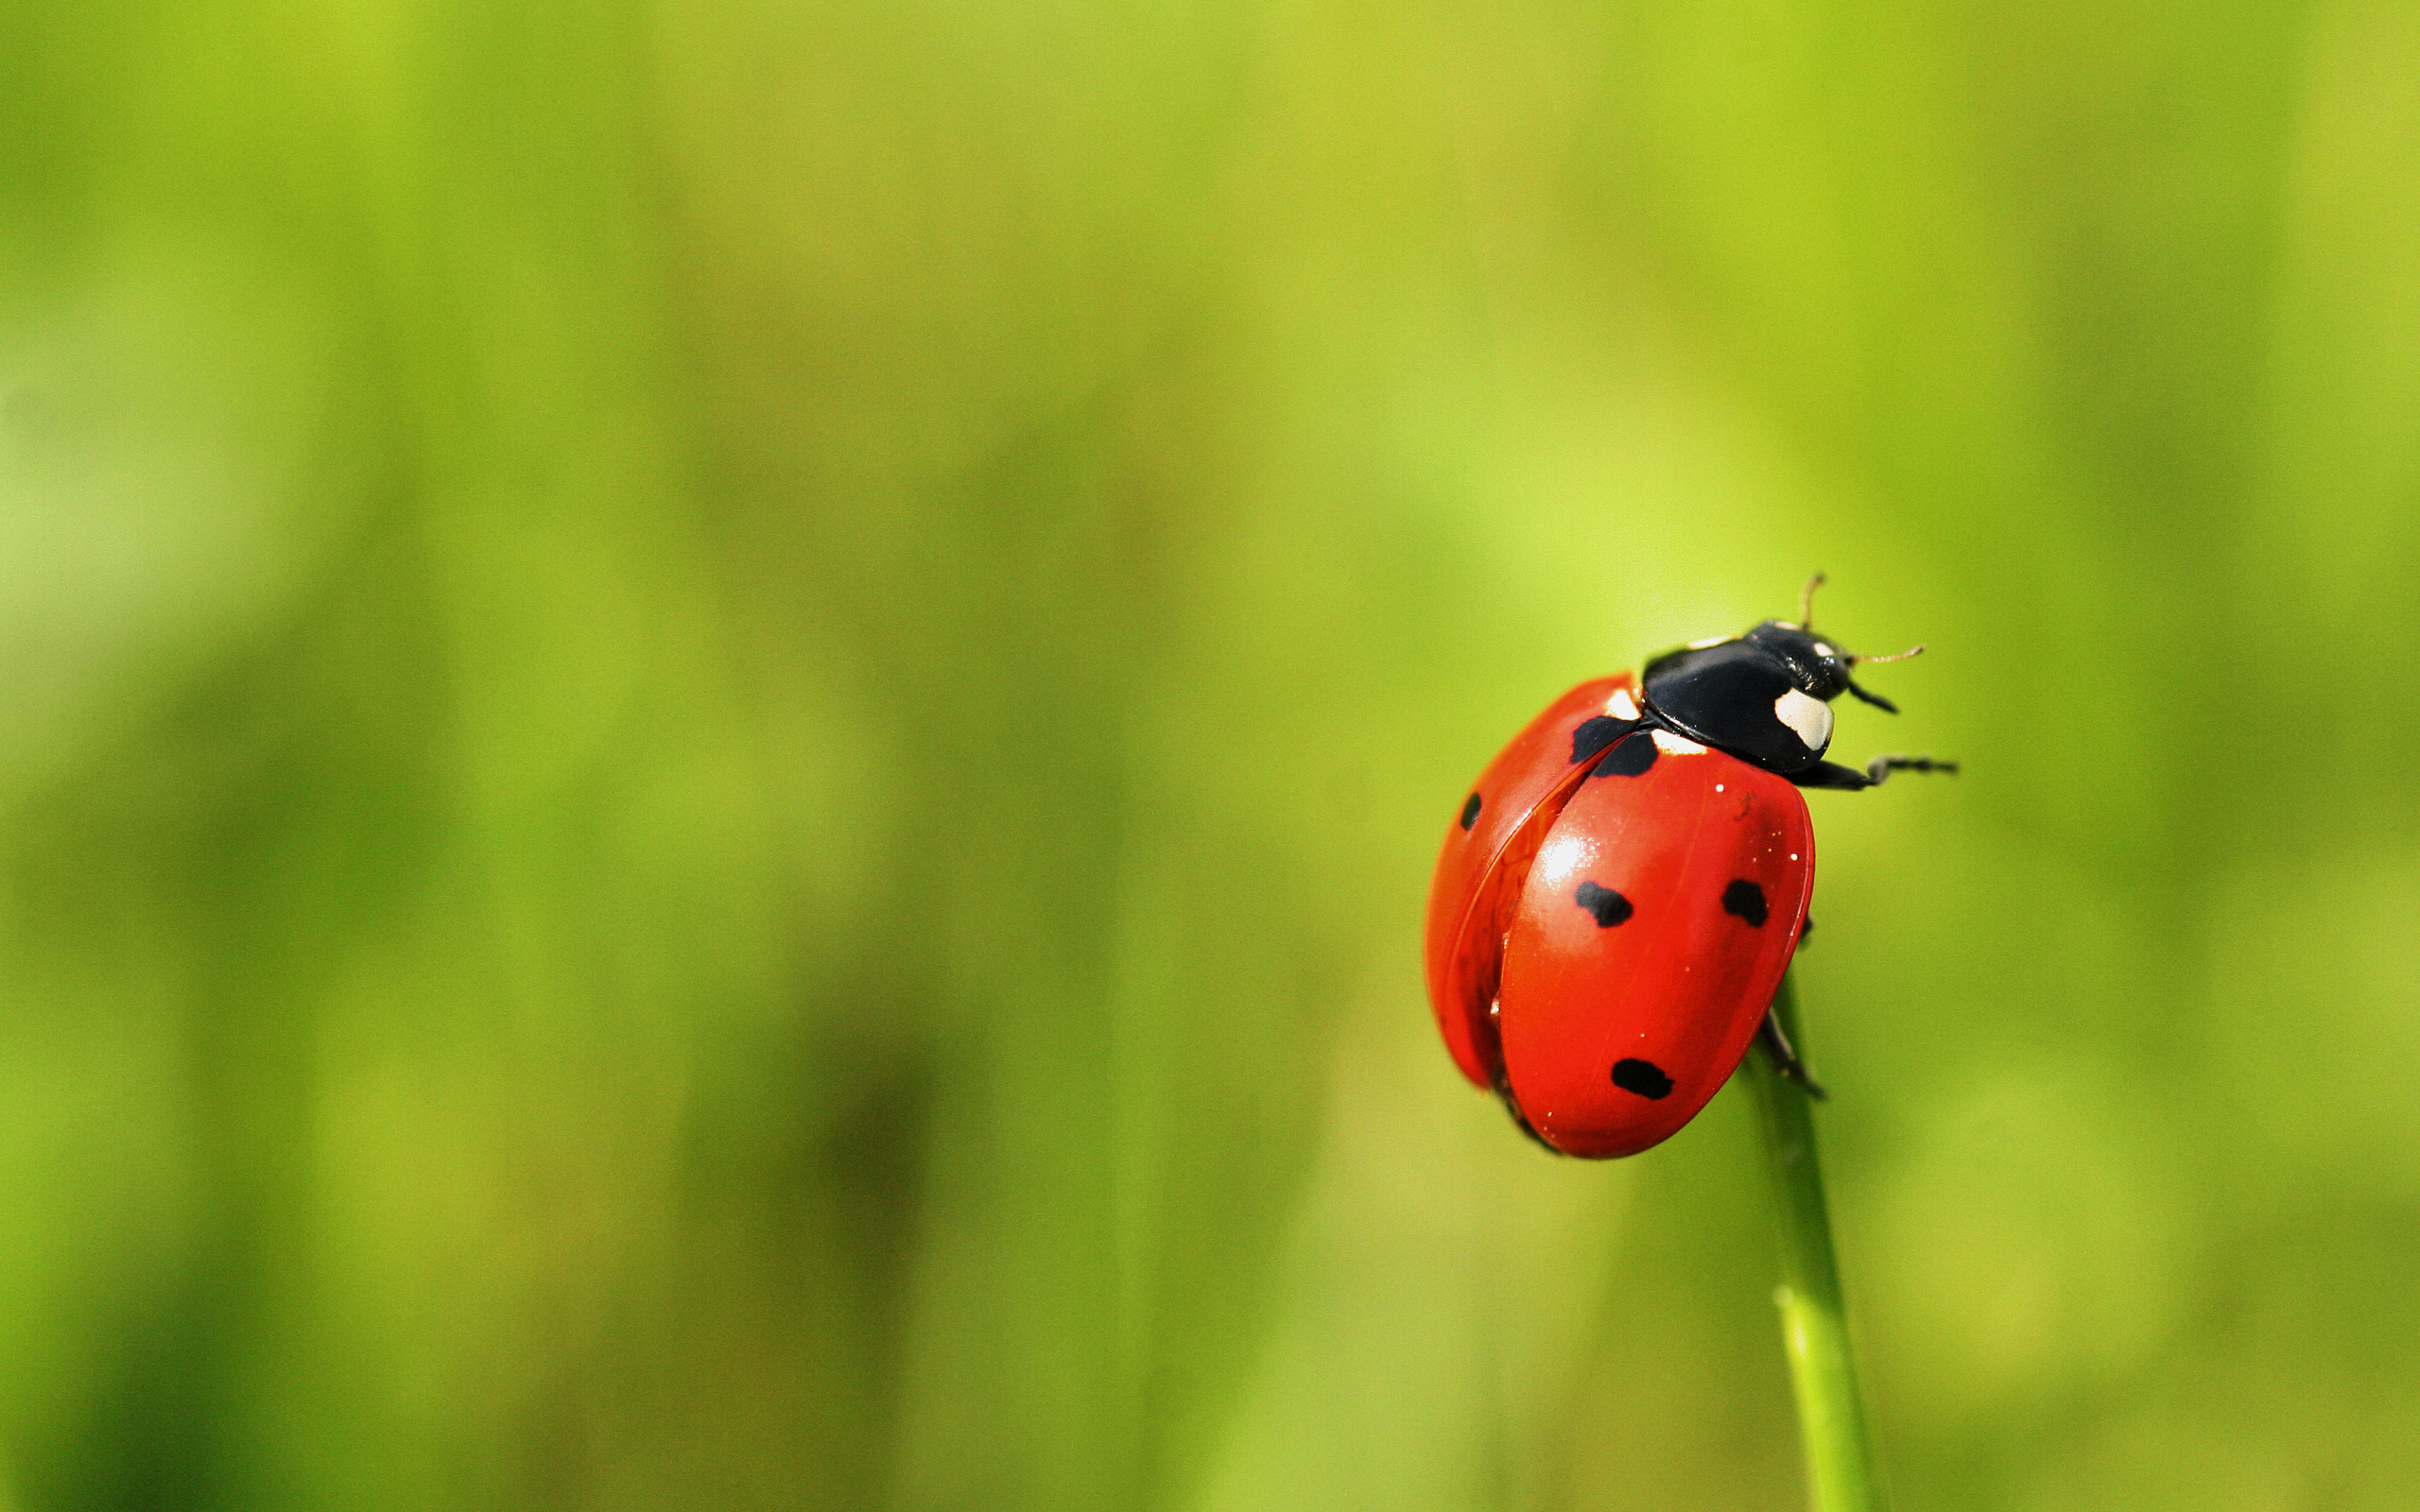 Ladybug Wallpapers, Pictures, Images